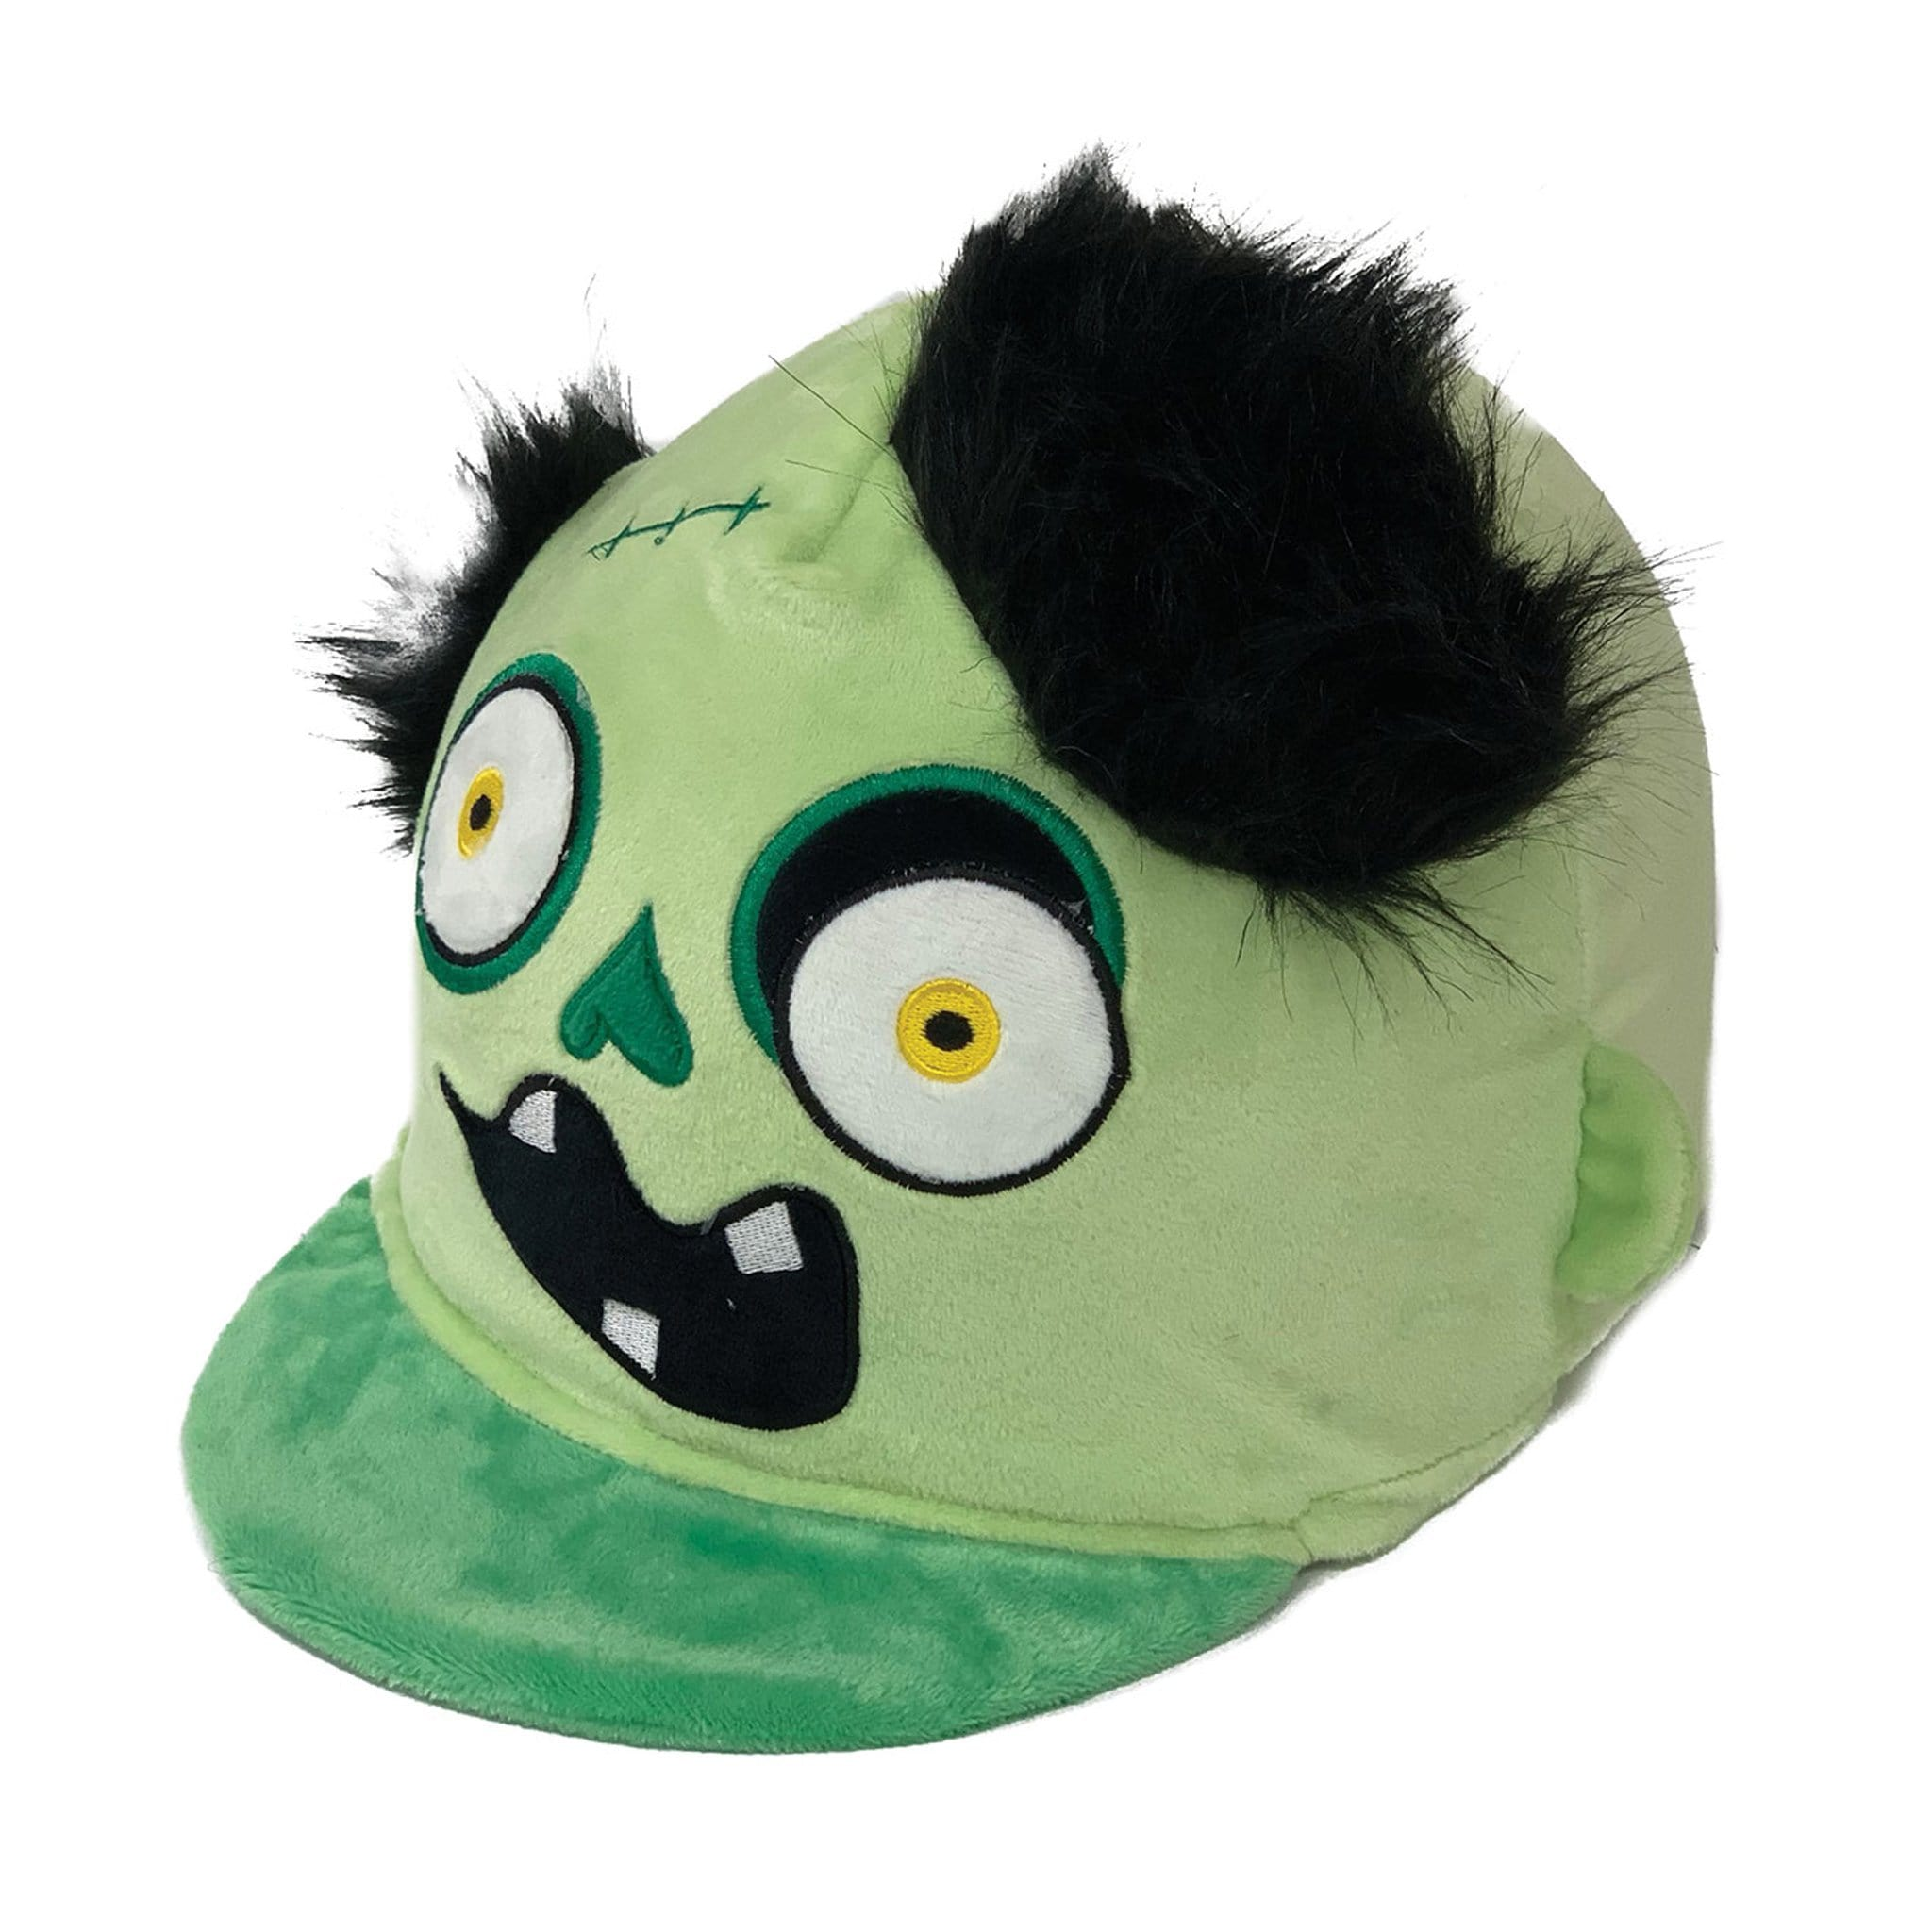 Equetech Children's Frank Monster Hat Silk FRH Green Novelty Hat Cover